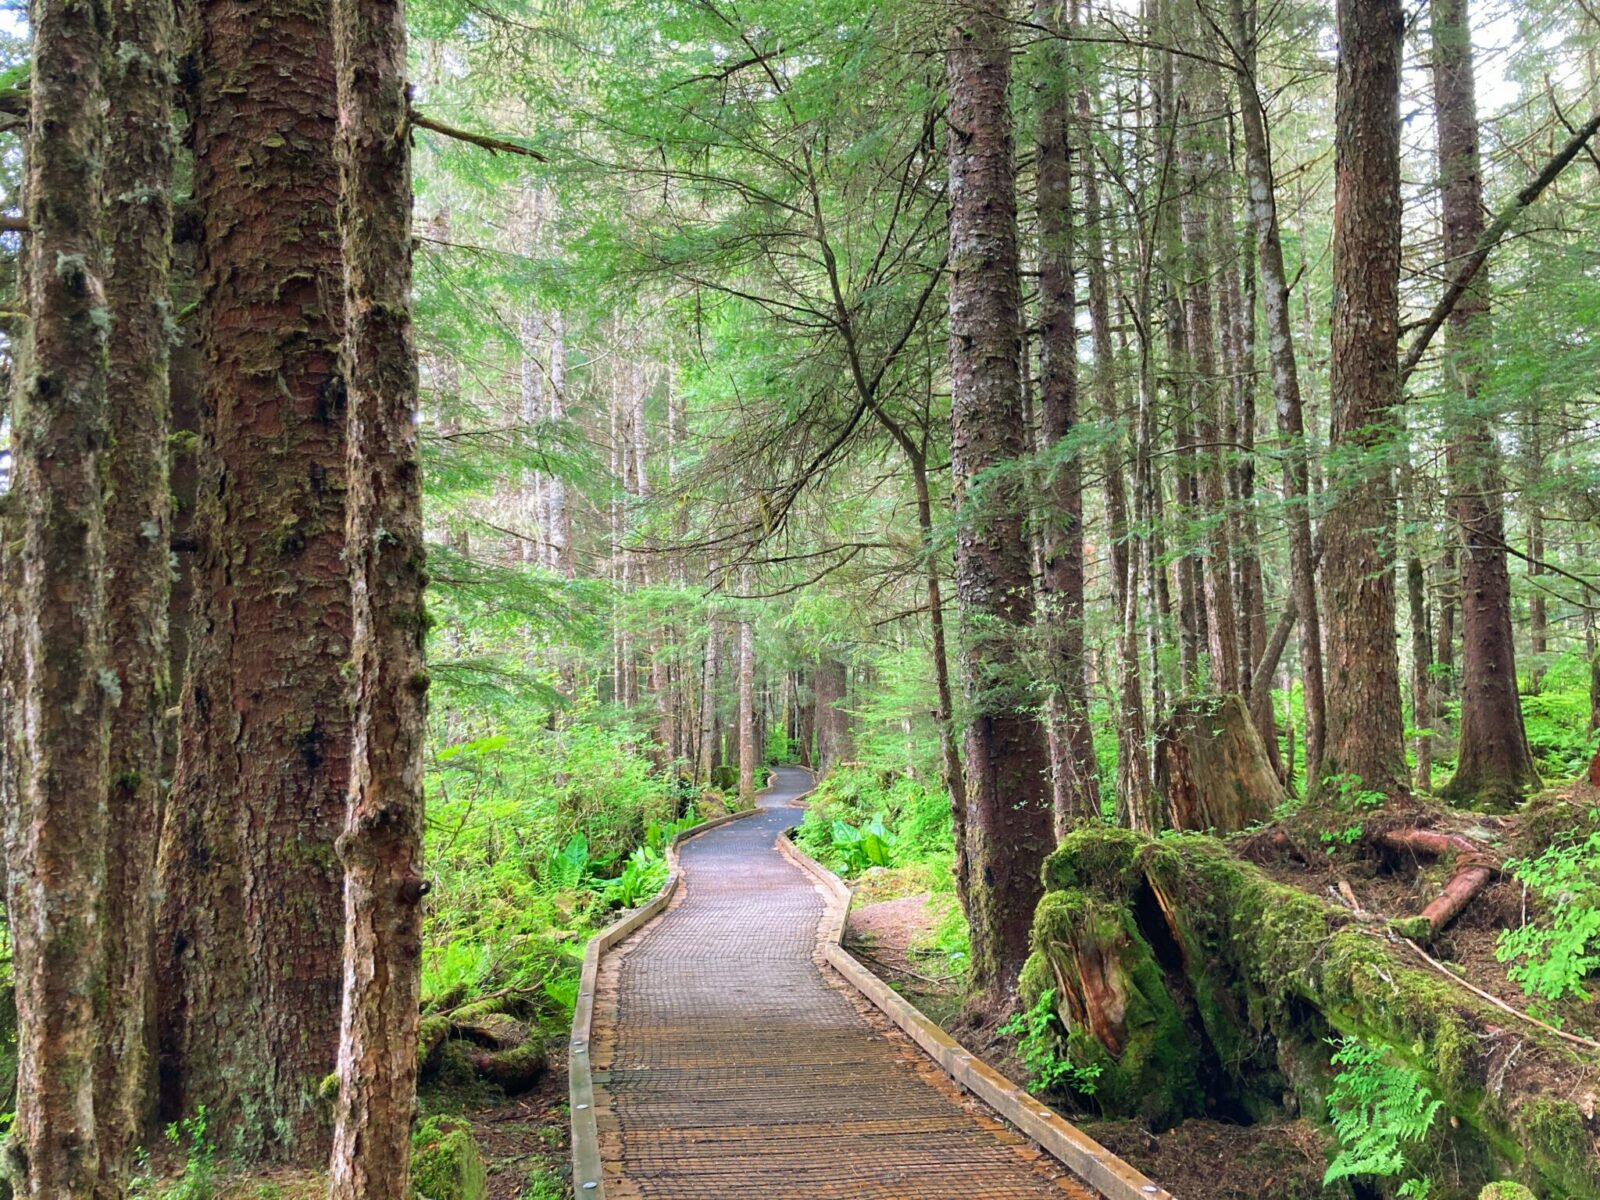 A trail in Petersburg Alaska is a wooden boardwalk winding through a lush green forest of evergreen trees and ferns